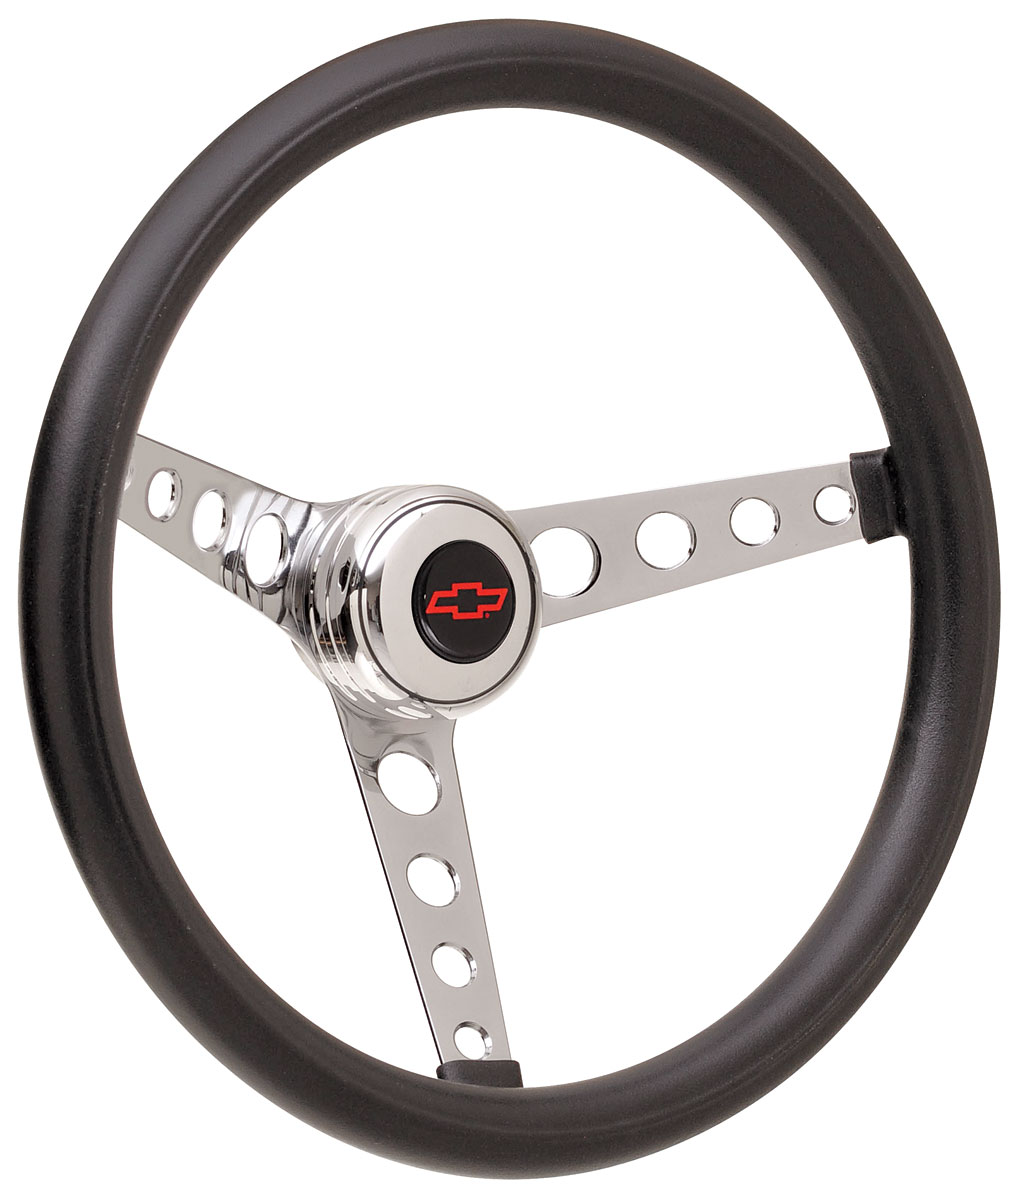 Photo of Steering Wheel Kits, Classic Foam Tall Cap - Polished with red Bowtie center